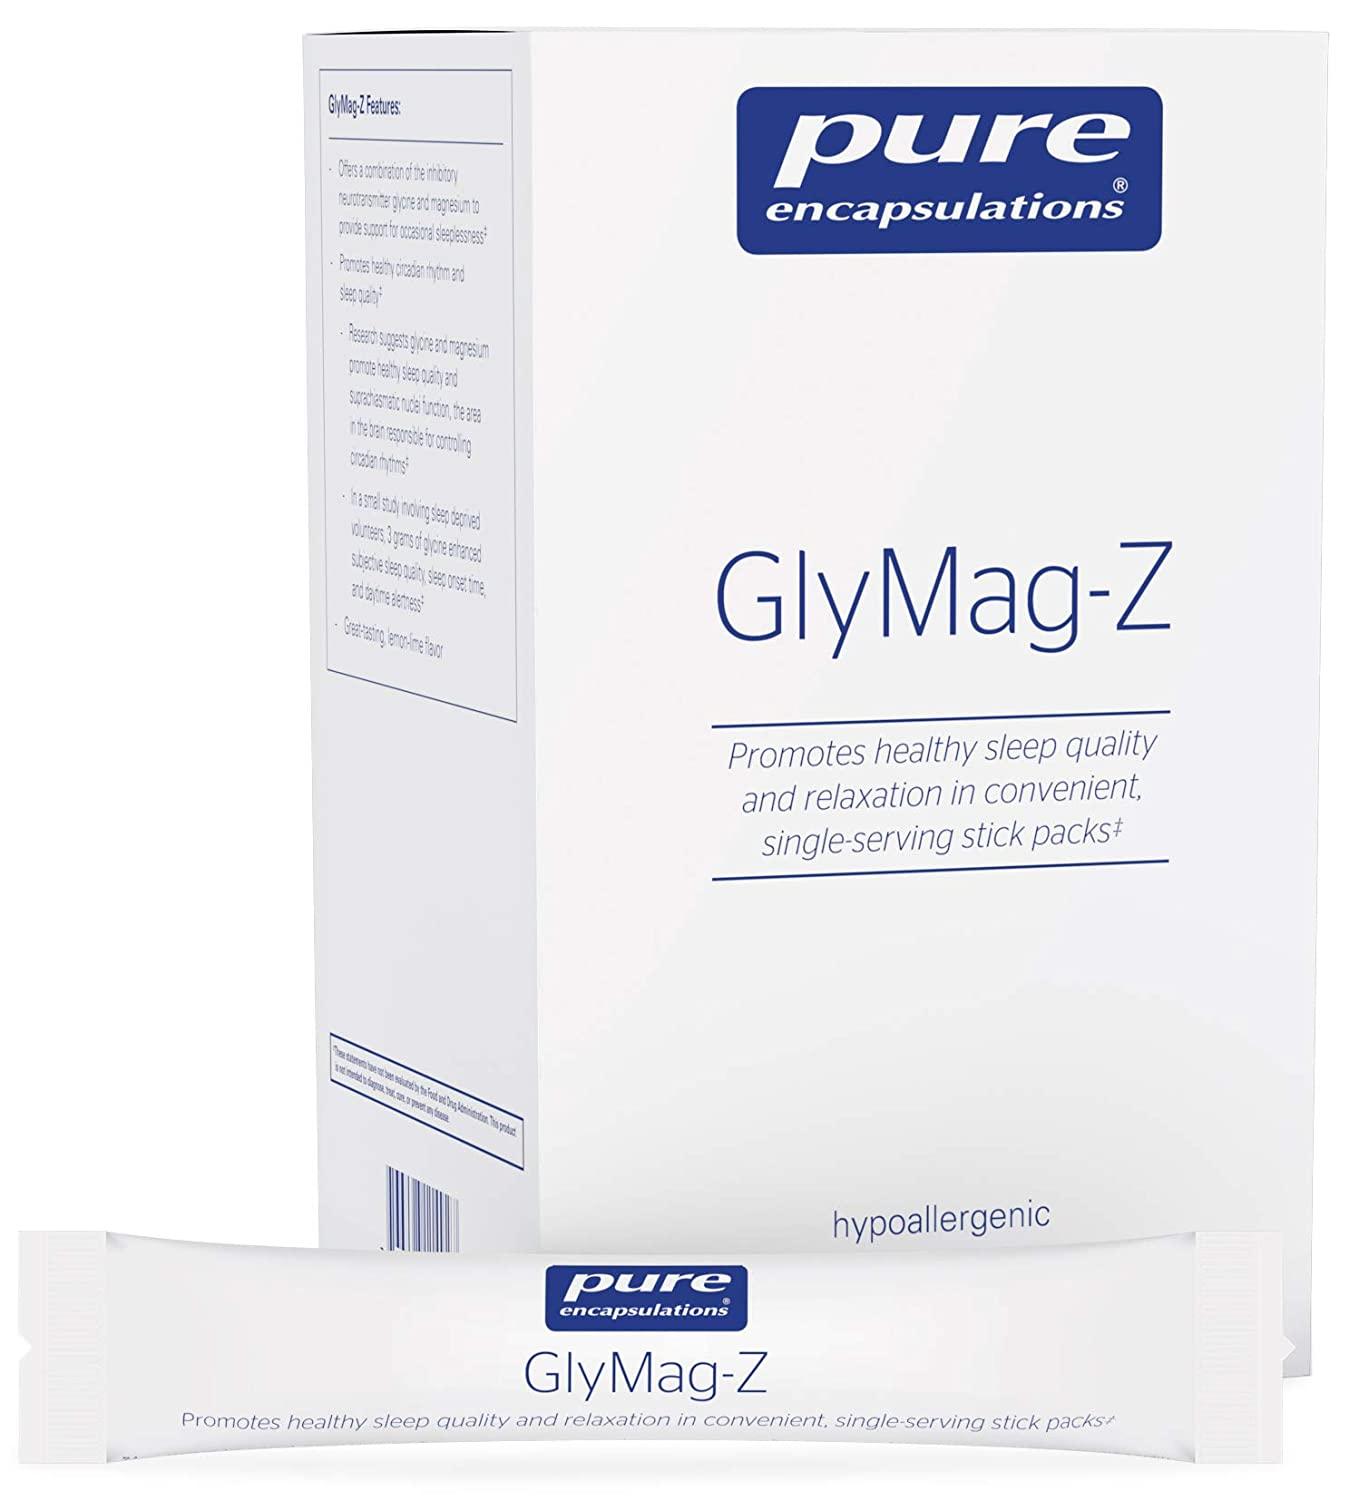 Amazon.com: Pure Encapsulations - GlyMag-Z - Supports Relaxation and Restful Sleep* - 30 Single Serving Packets: Health & Personal Care